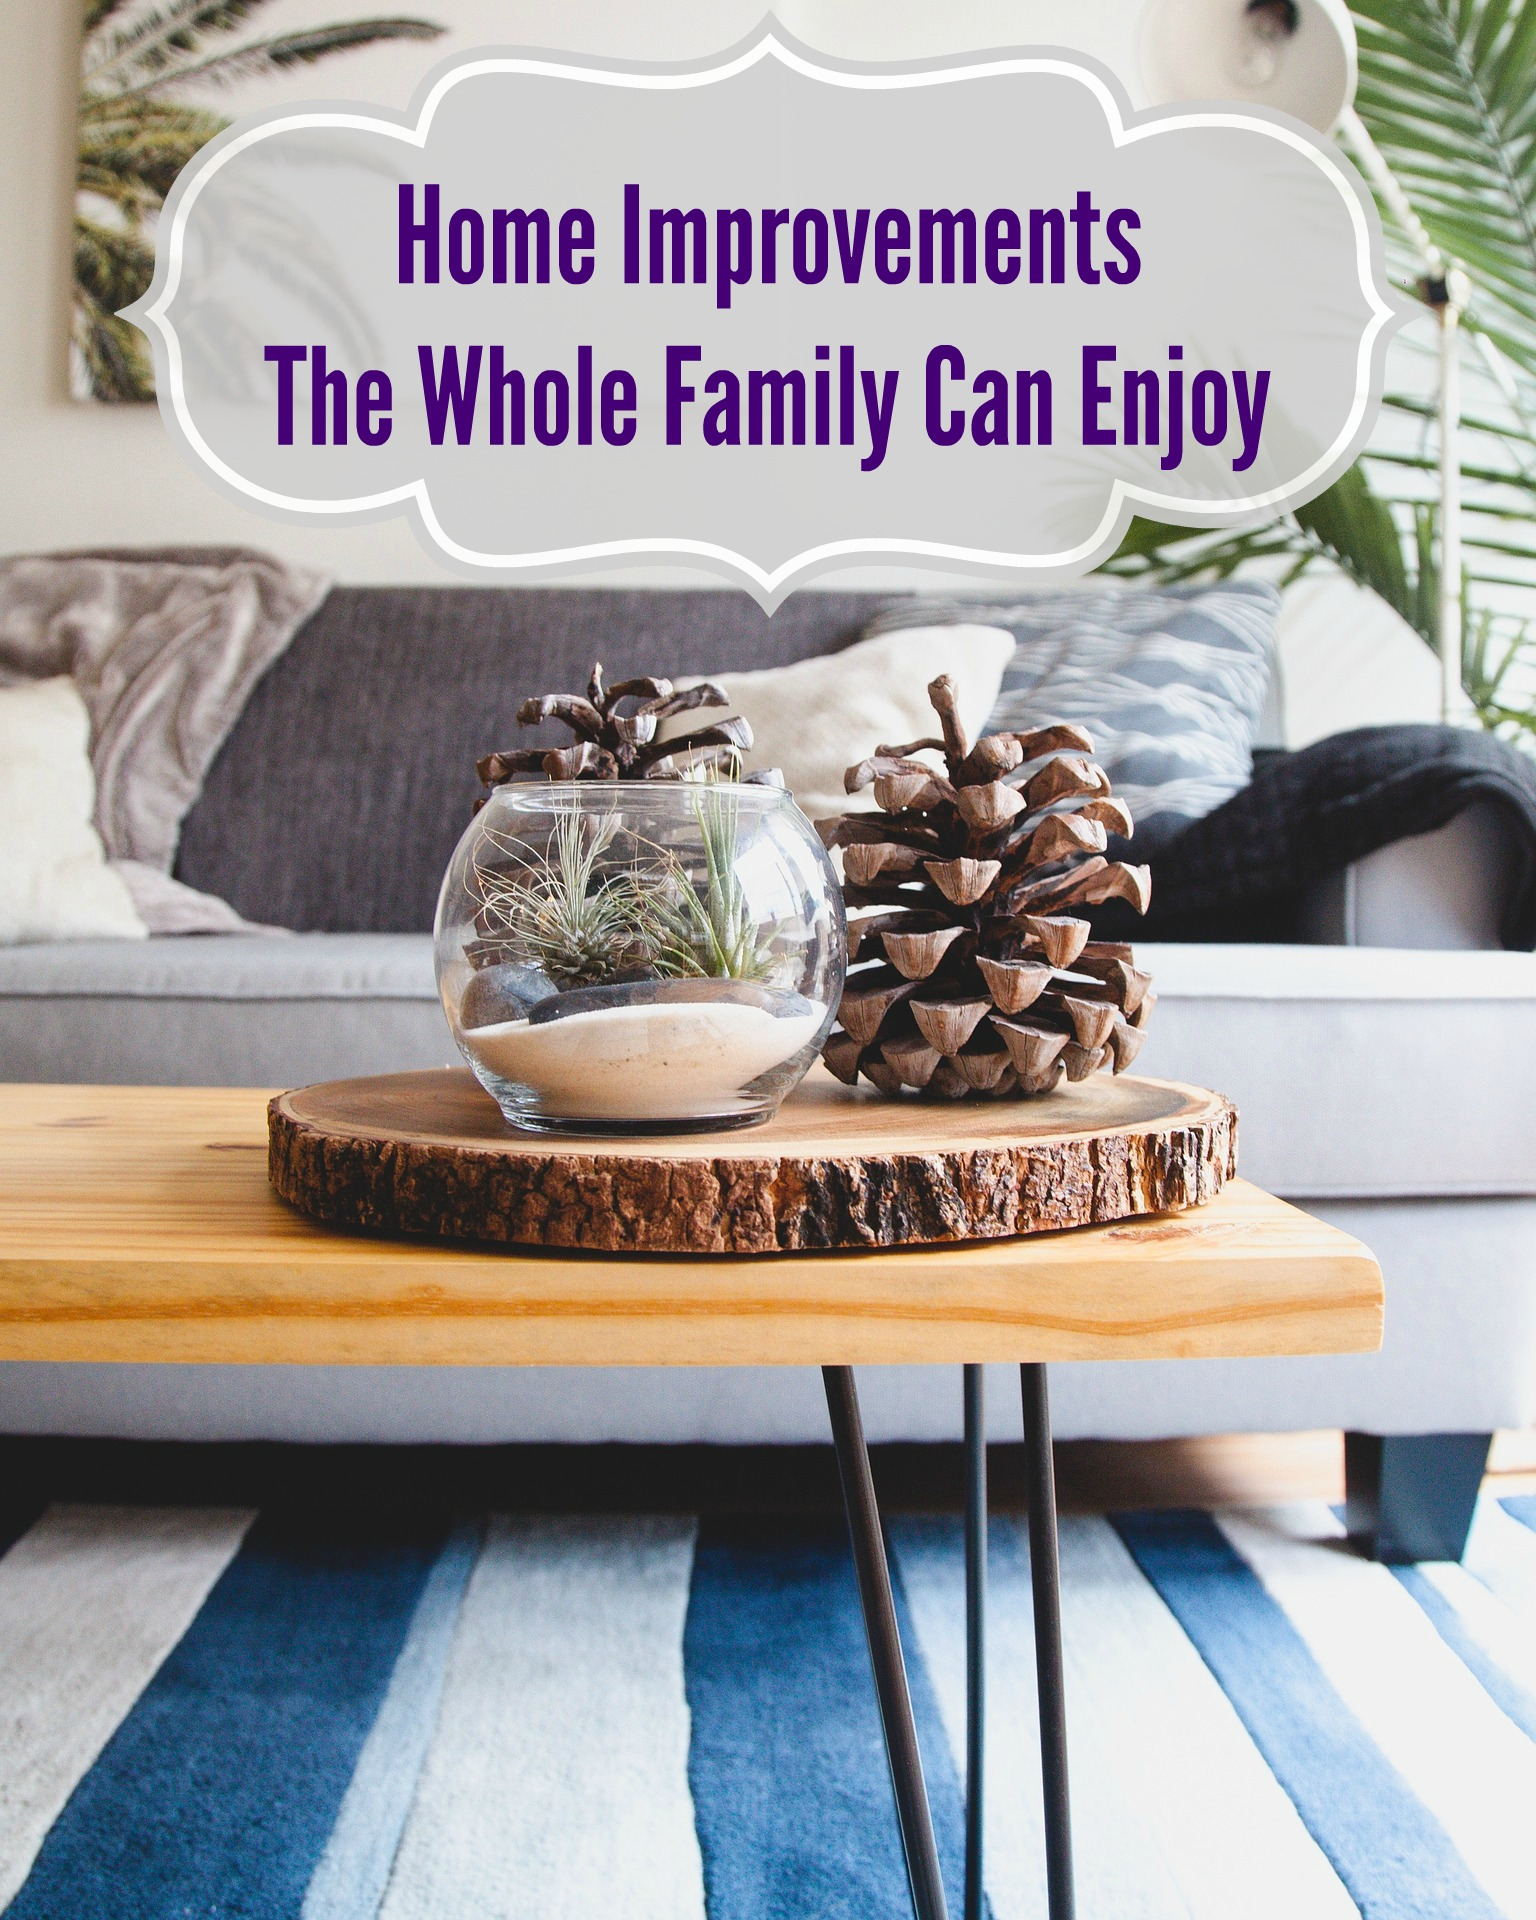 Home Improvements The Whole Family Can Enjoy